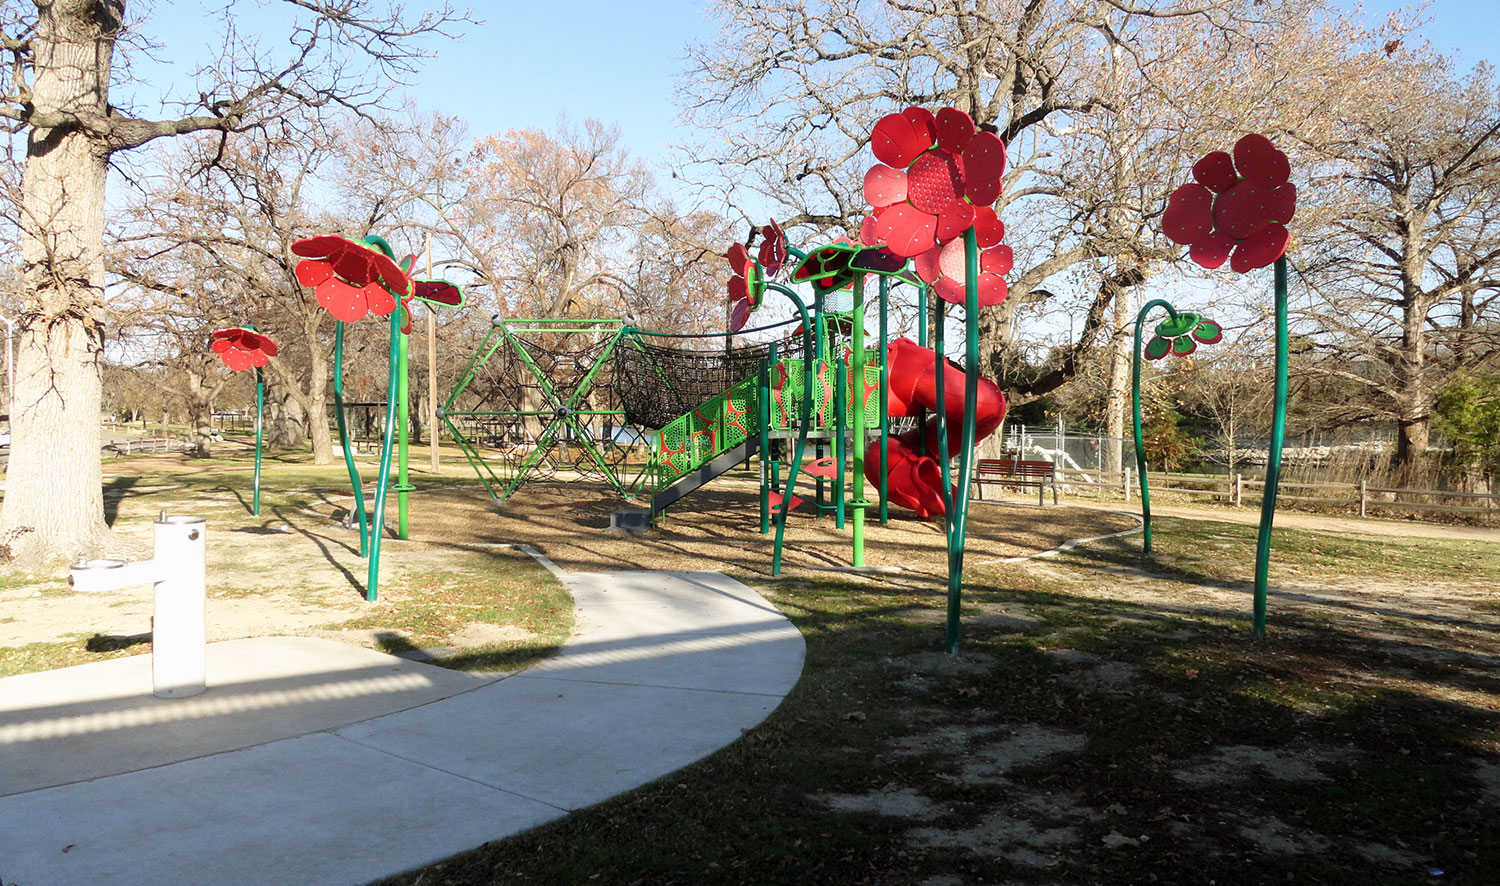 Red Poppy-themed playground in San Gabriel Park in Georgetown, TX